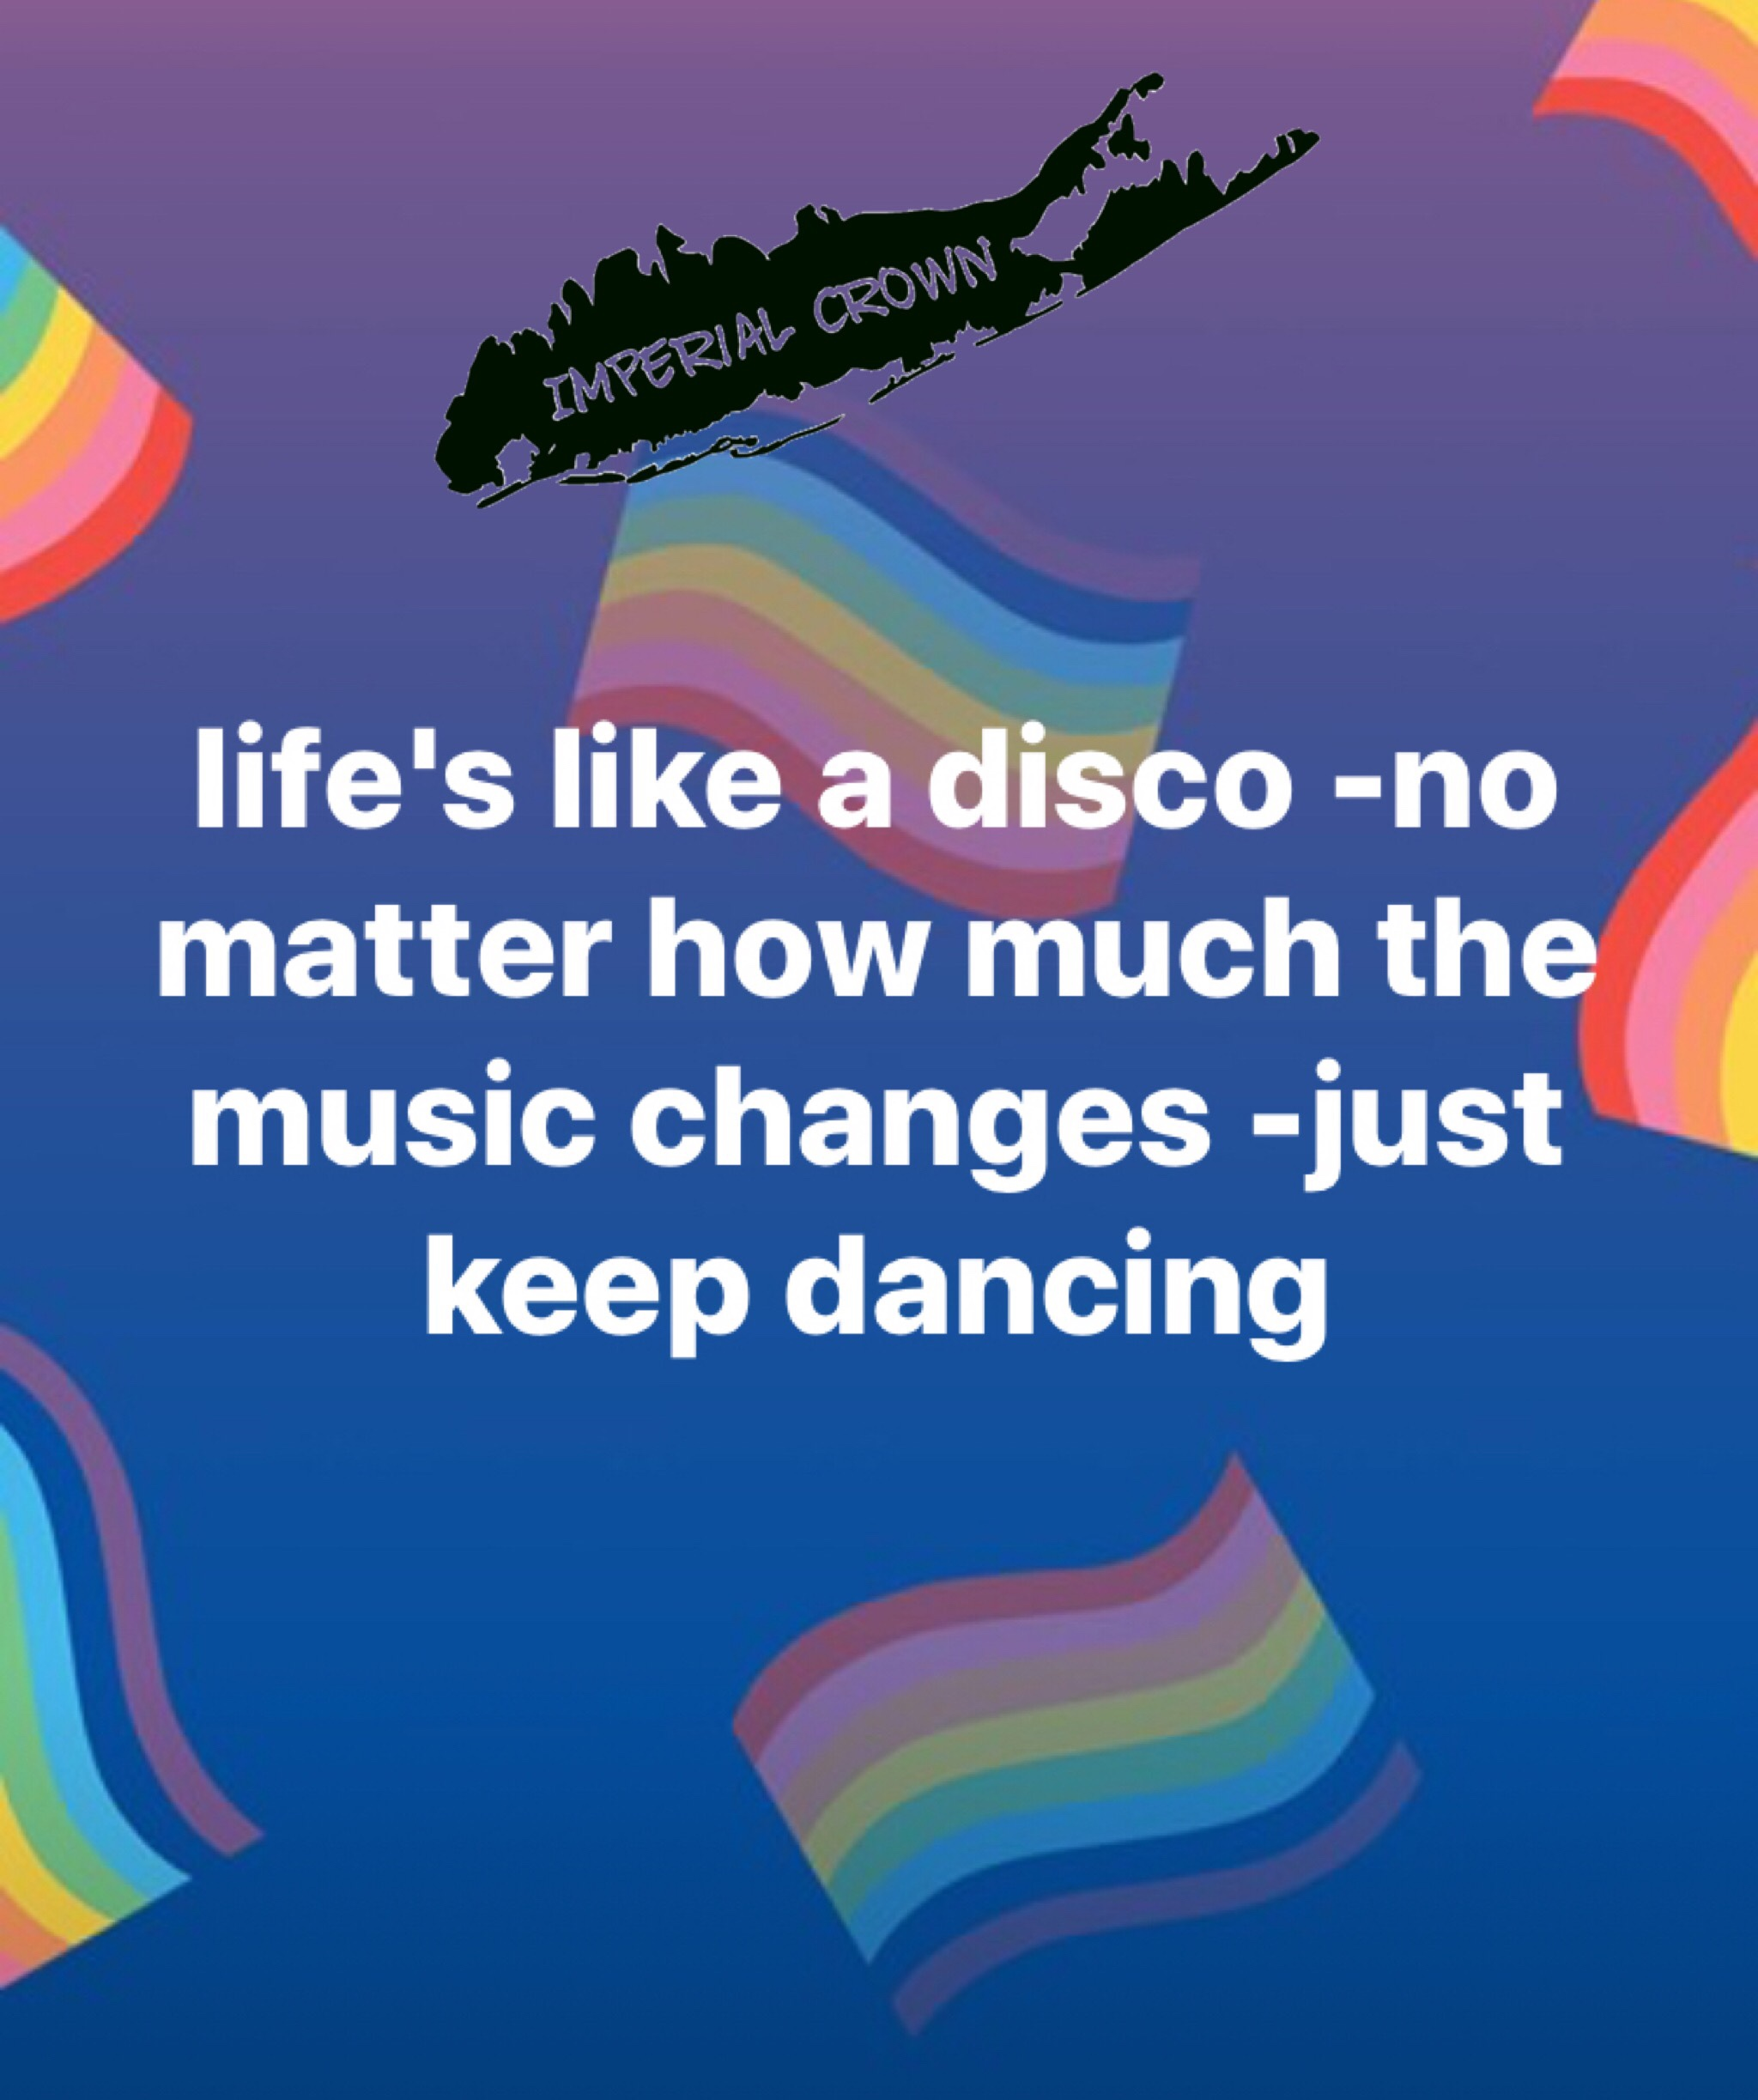 Life's like a disco -no matter how much the music changes….